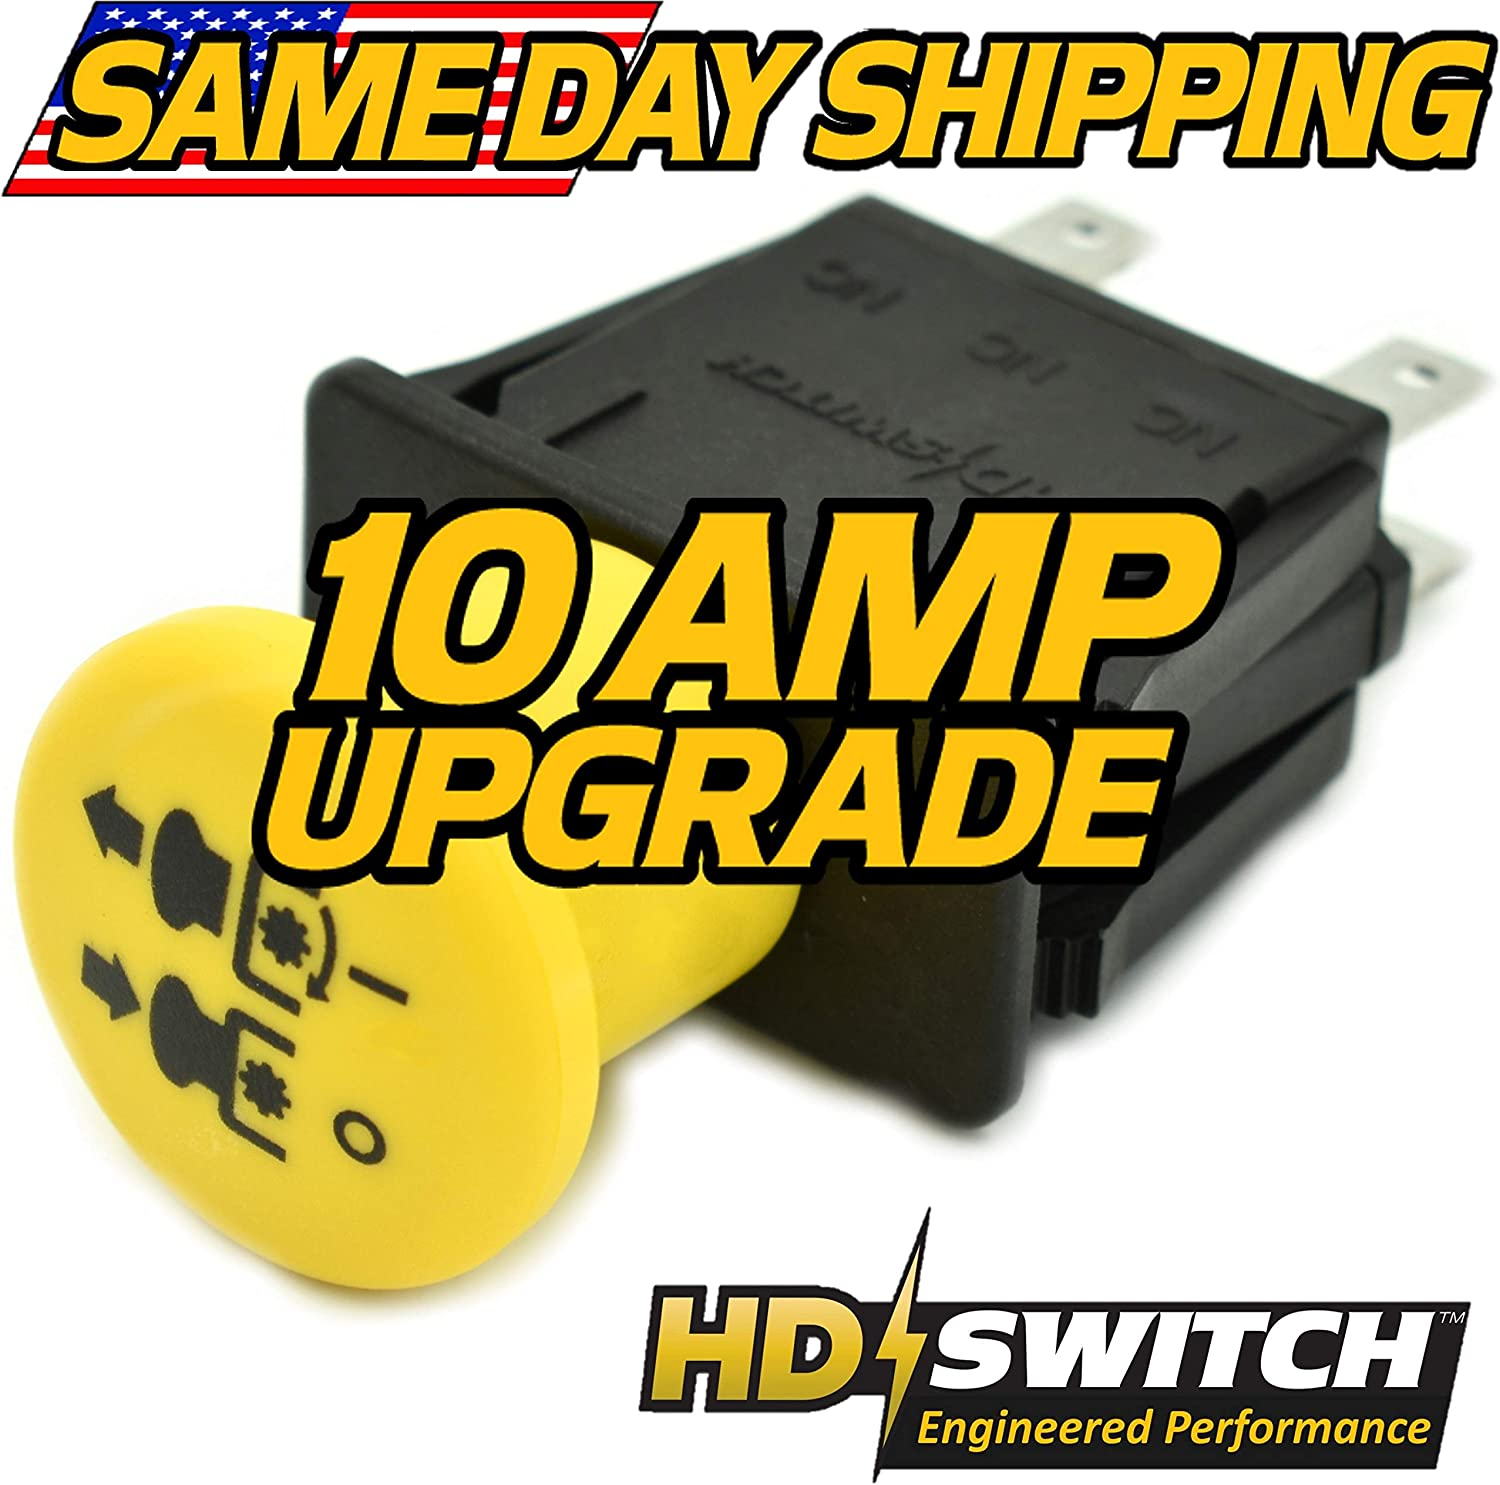 Amazon.com : HD Switch Blade Clutch Engagement PTO Switch - OEM Upgrade -  Replaces John Deere Ztrak 717, 727, 737, 757, 777, 997-10 AMP Upgrade :  Garden & Outdoor